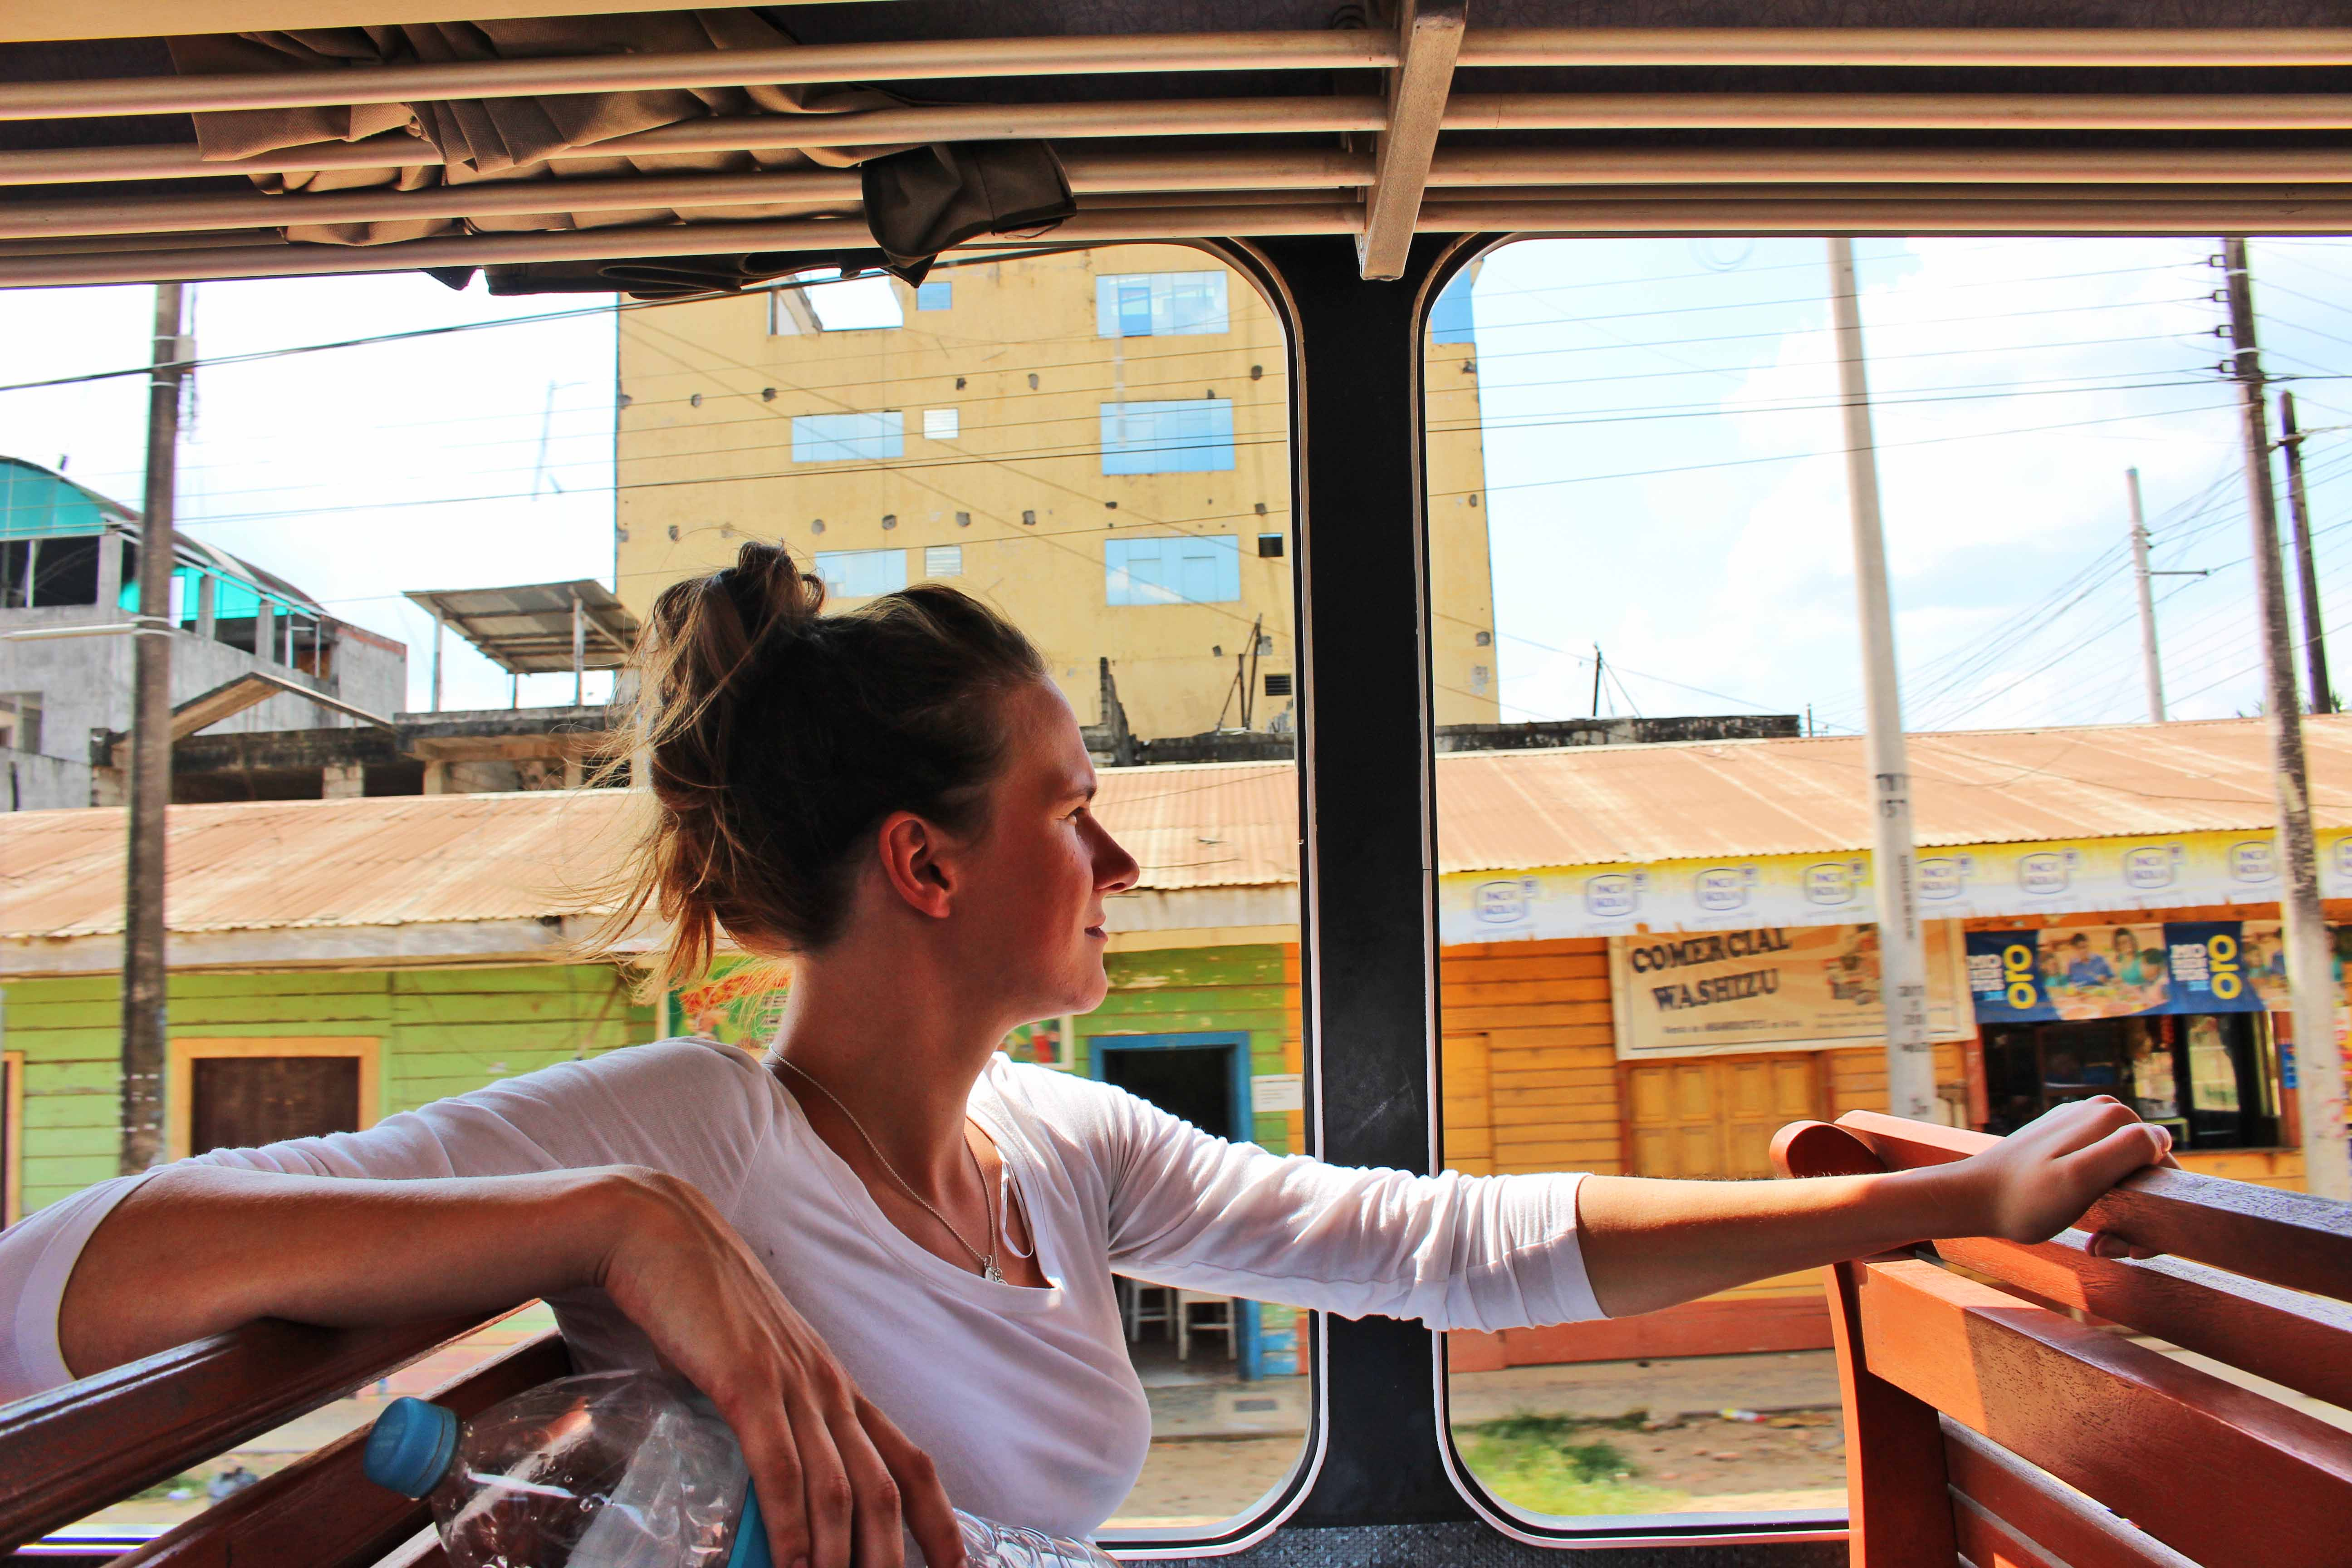 lyndsay on Bus Puerto Maldanado